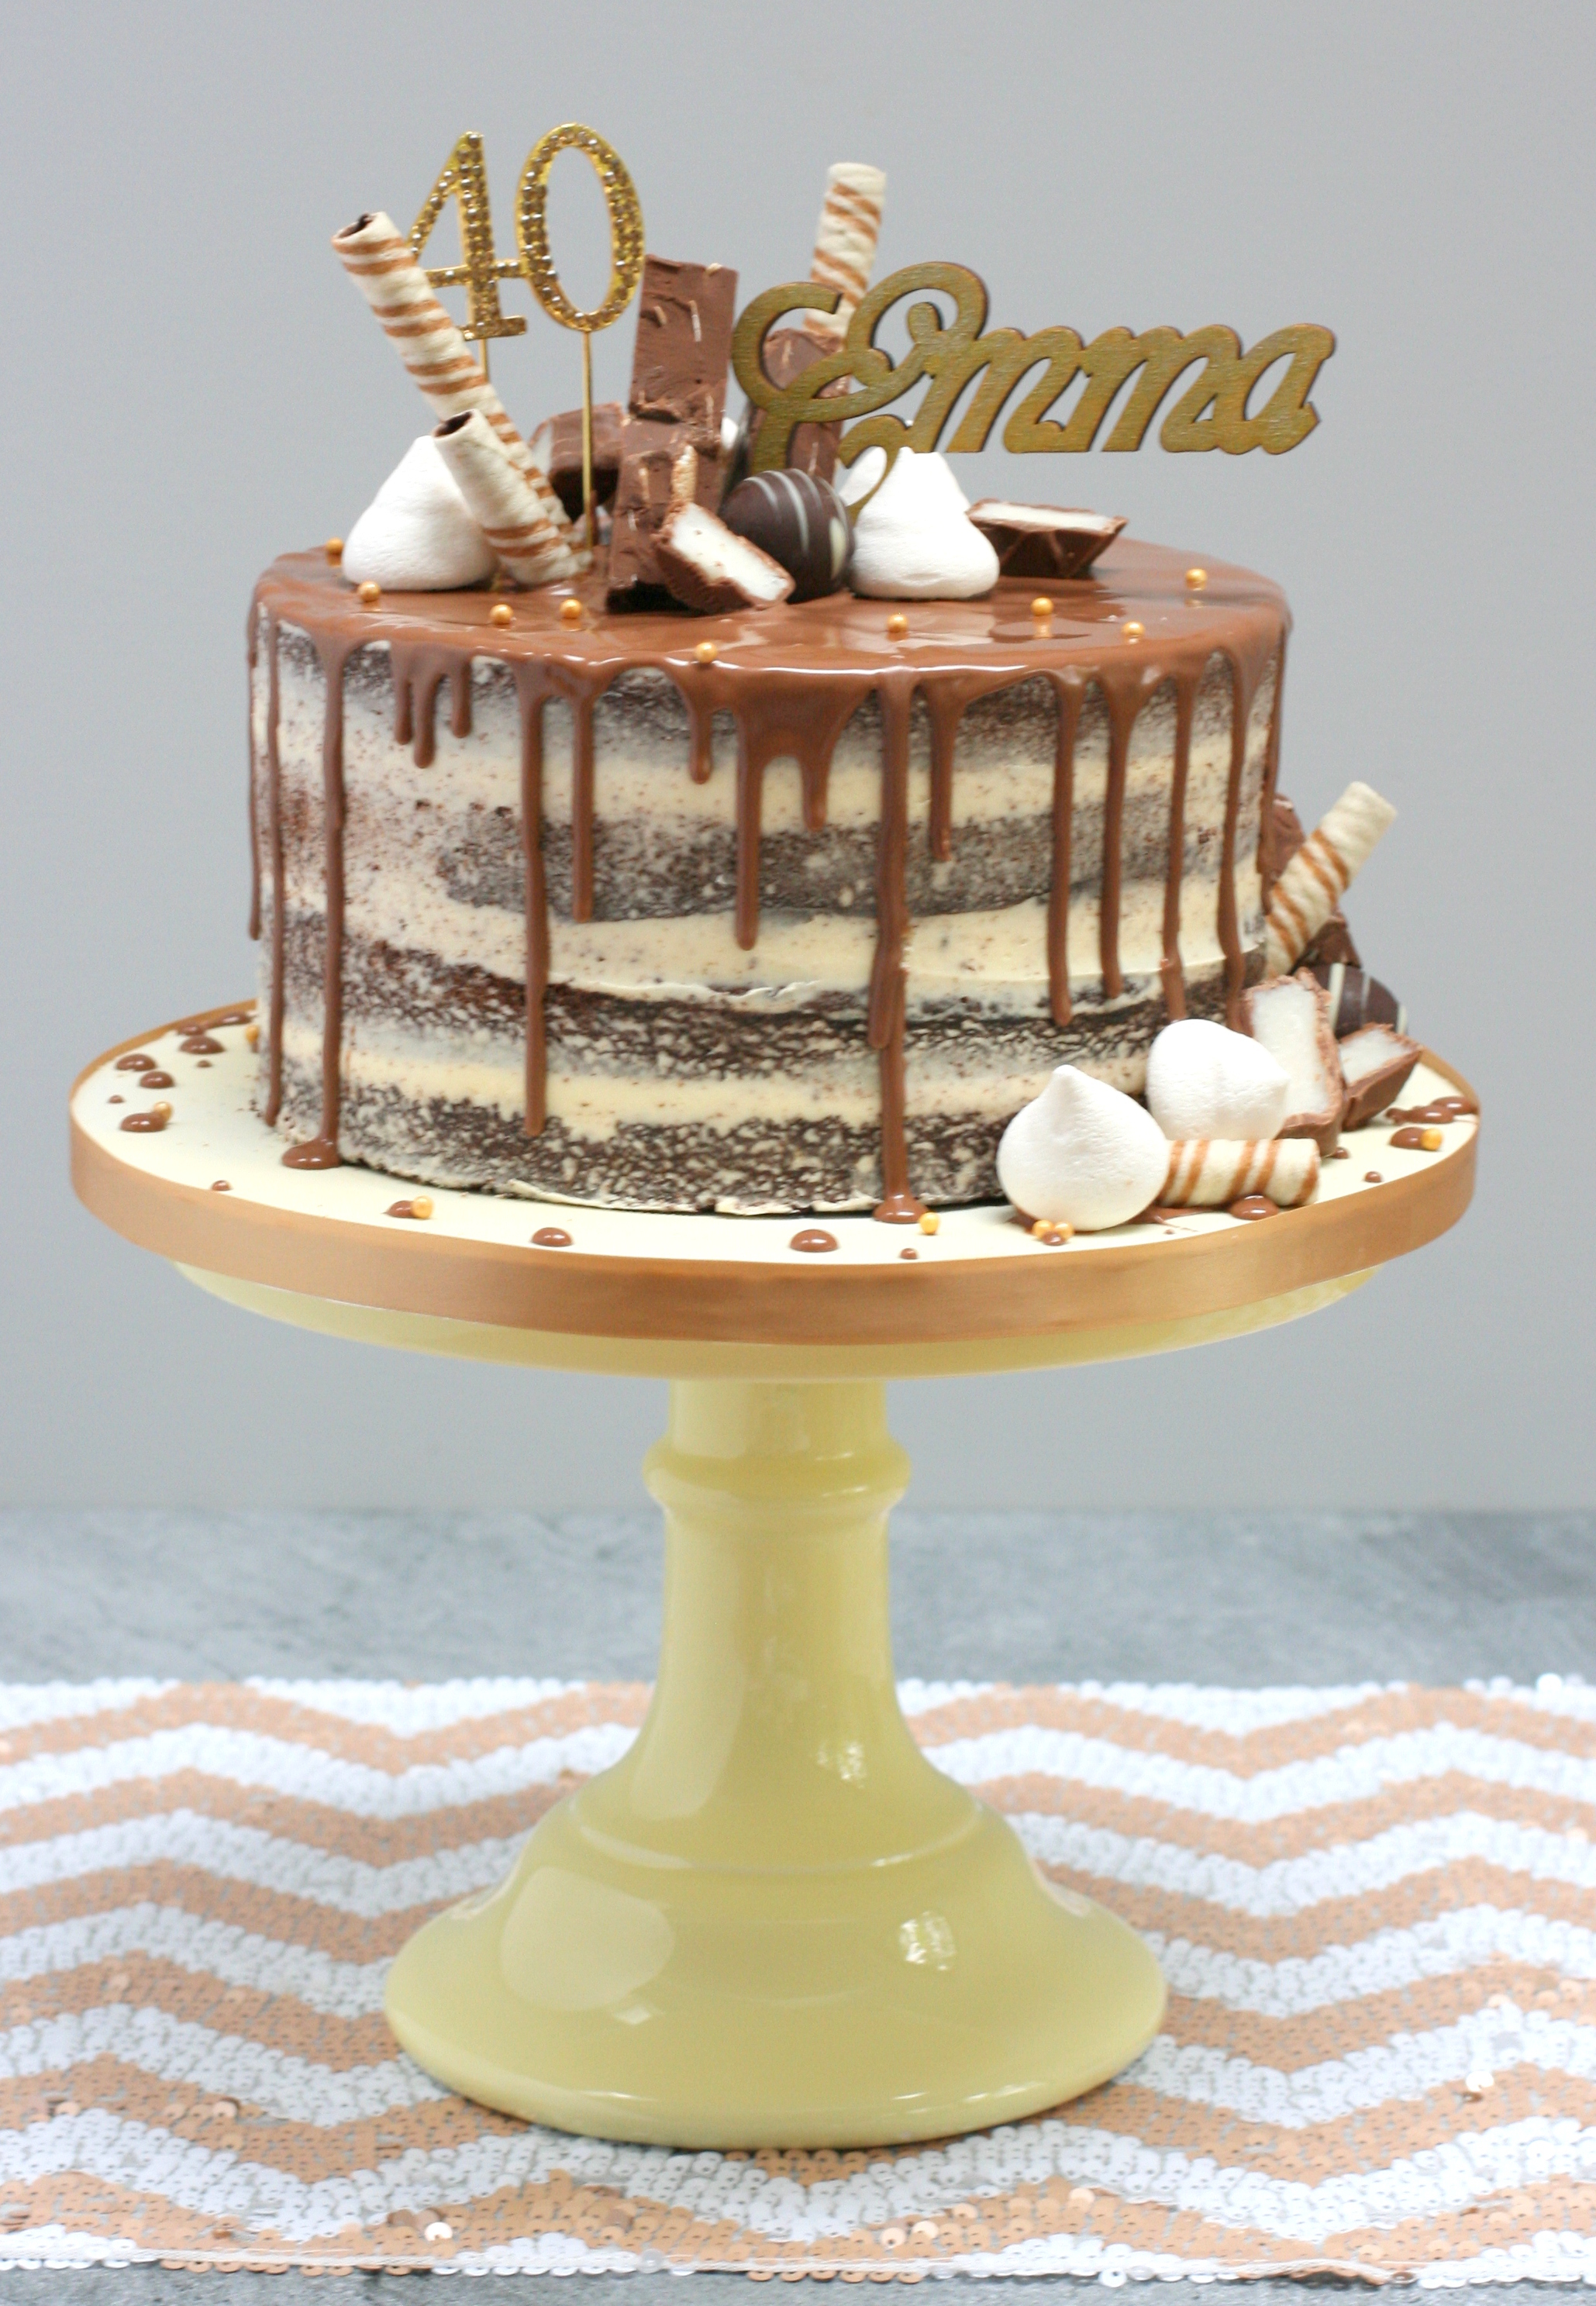 Chocolate layer drip cake